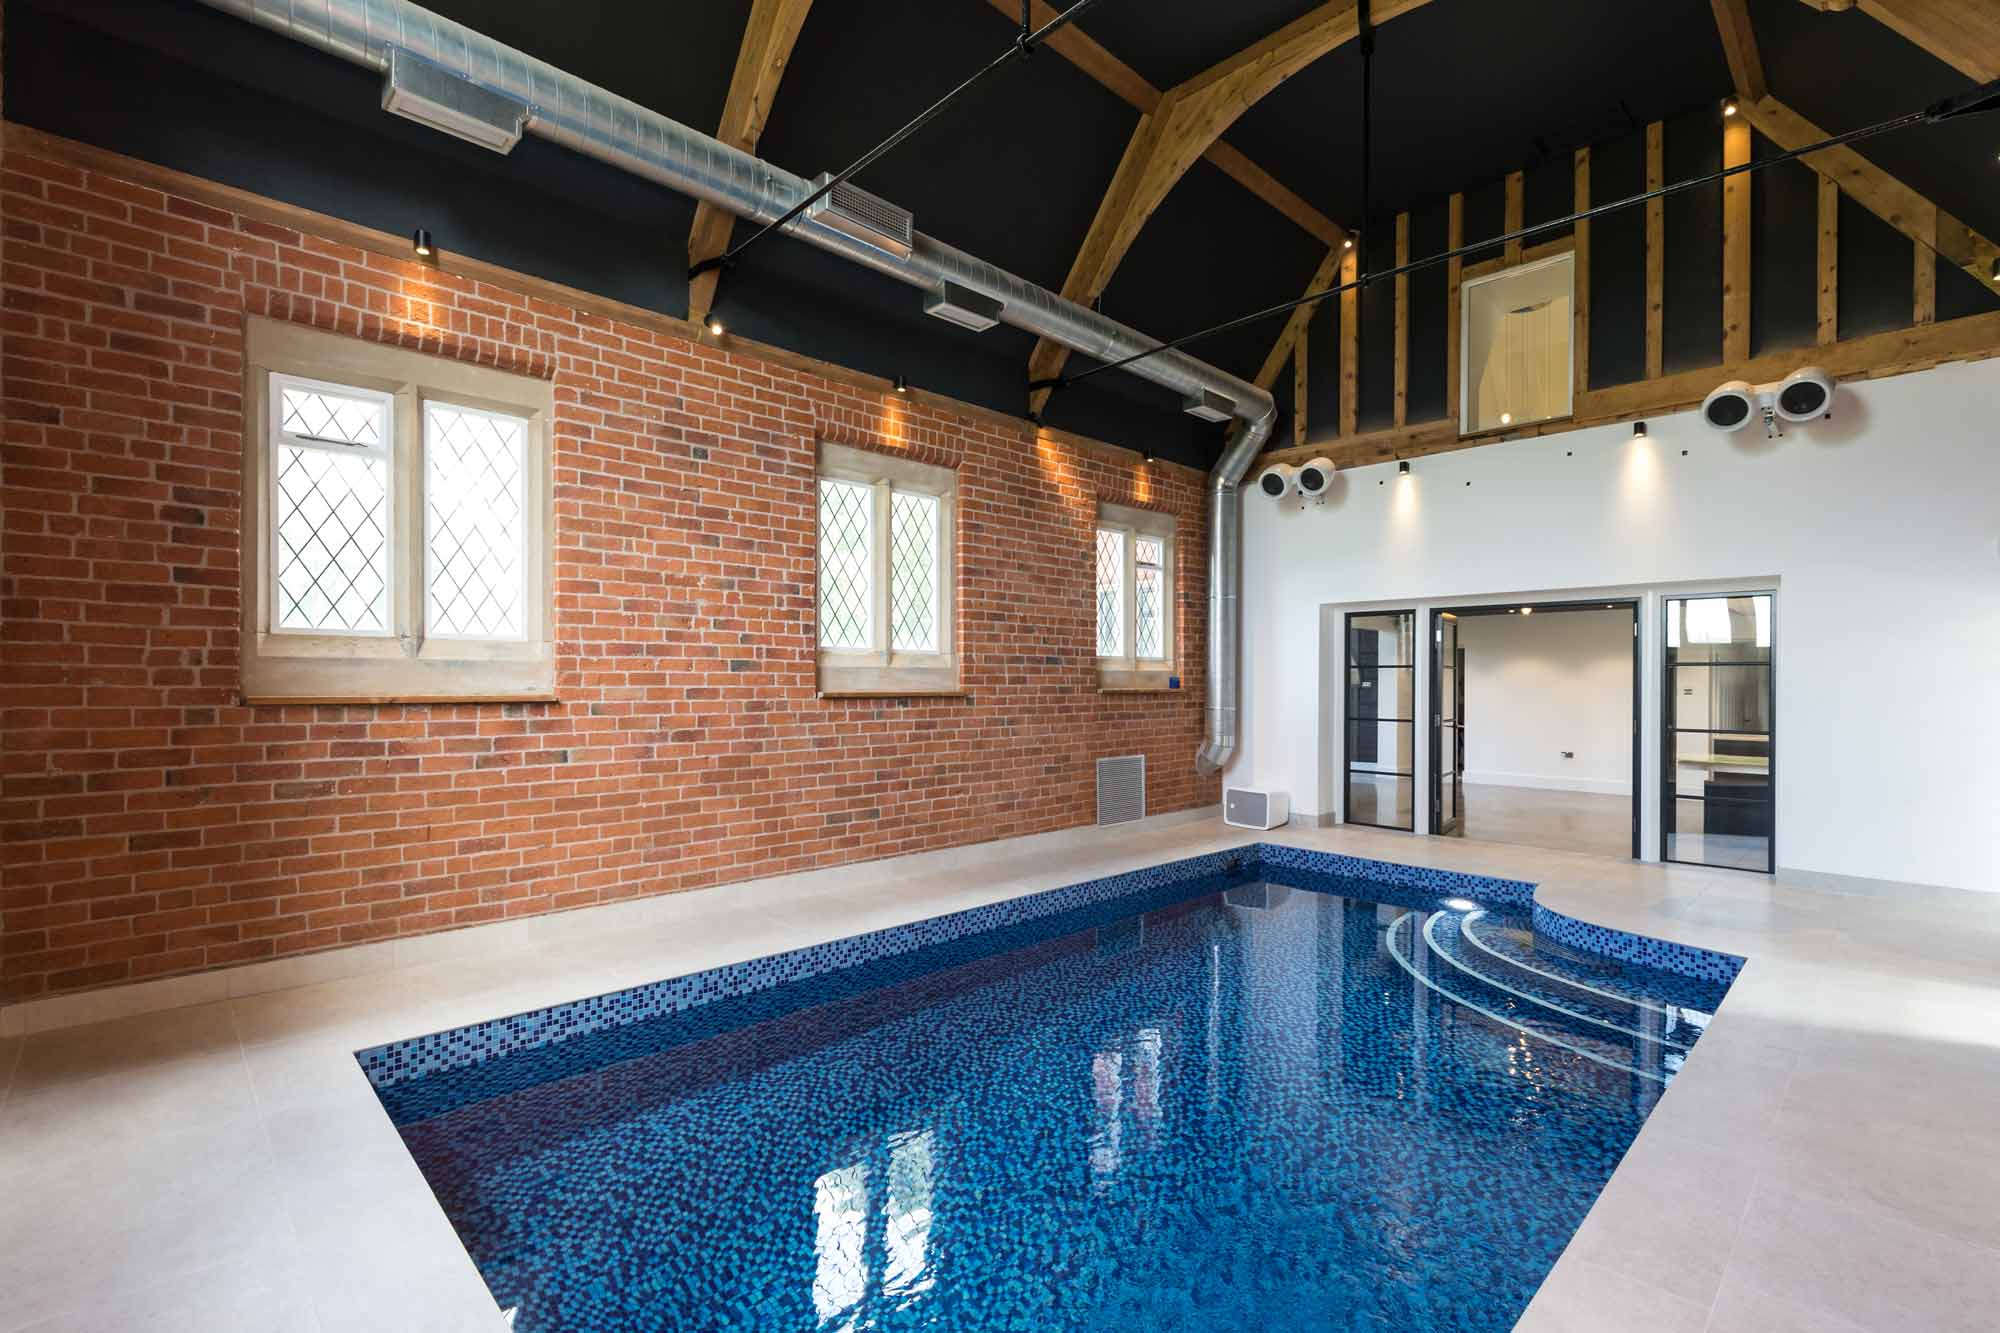 indoor swimming pool listed building ventilation exposed brick stone windows